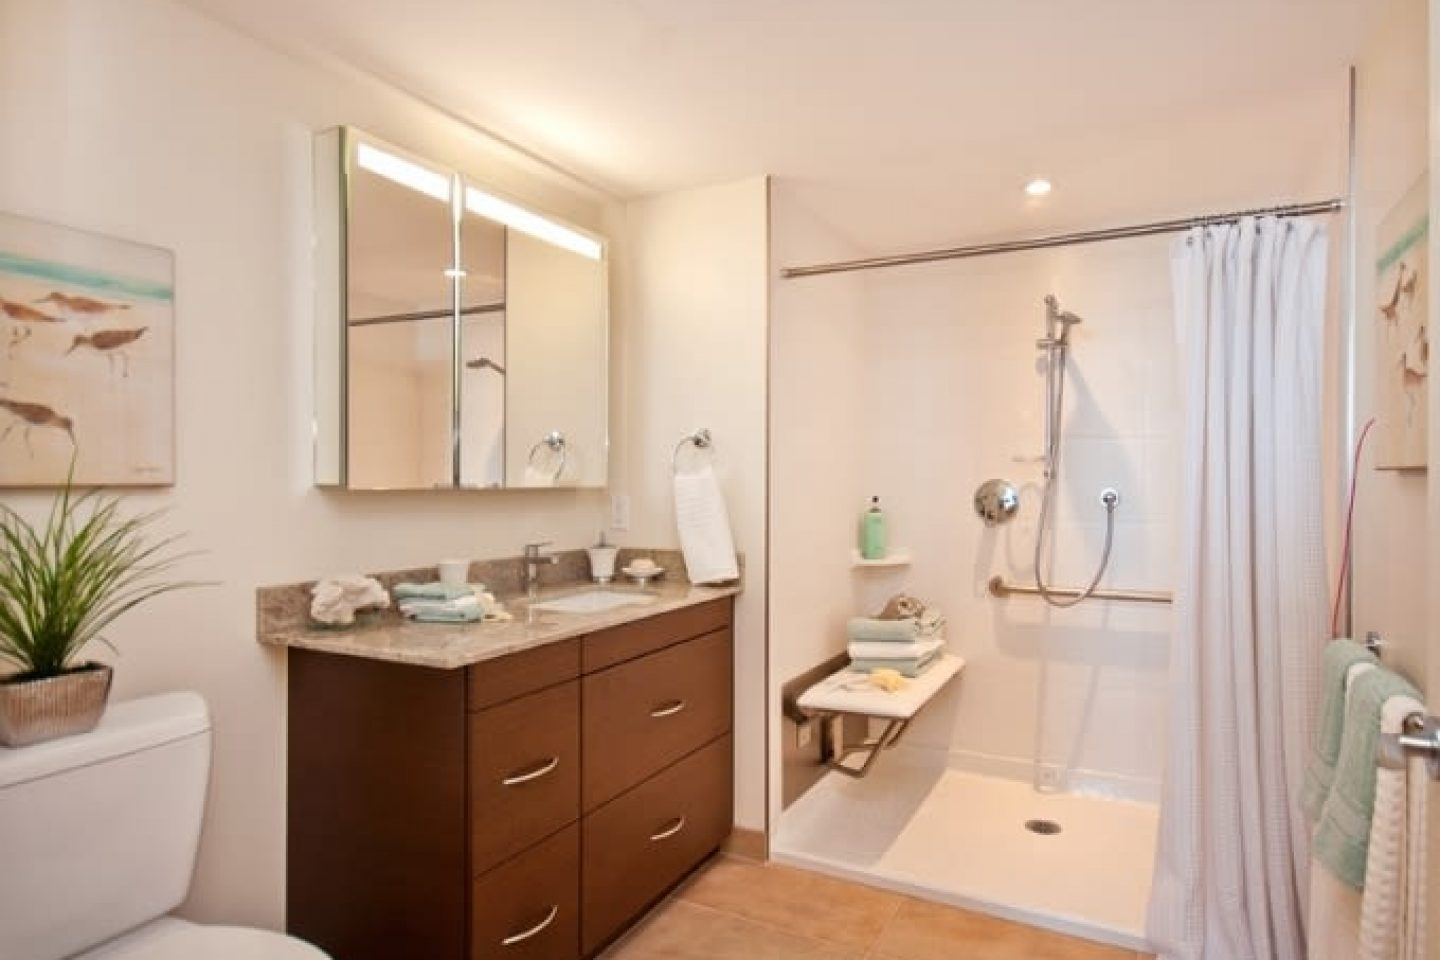 Westerleigh PARC Retirment Living Bathroom and SIDLER Mirrored Cabinet